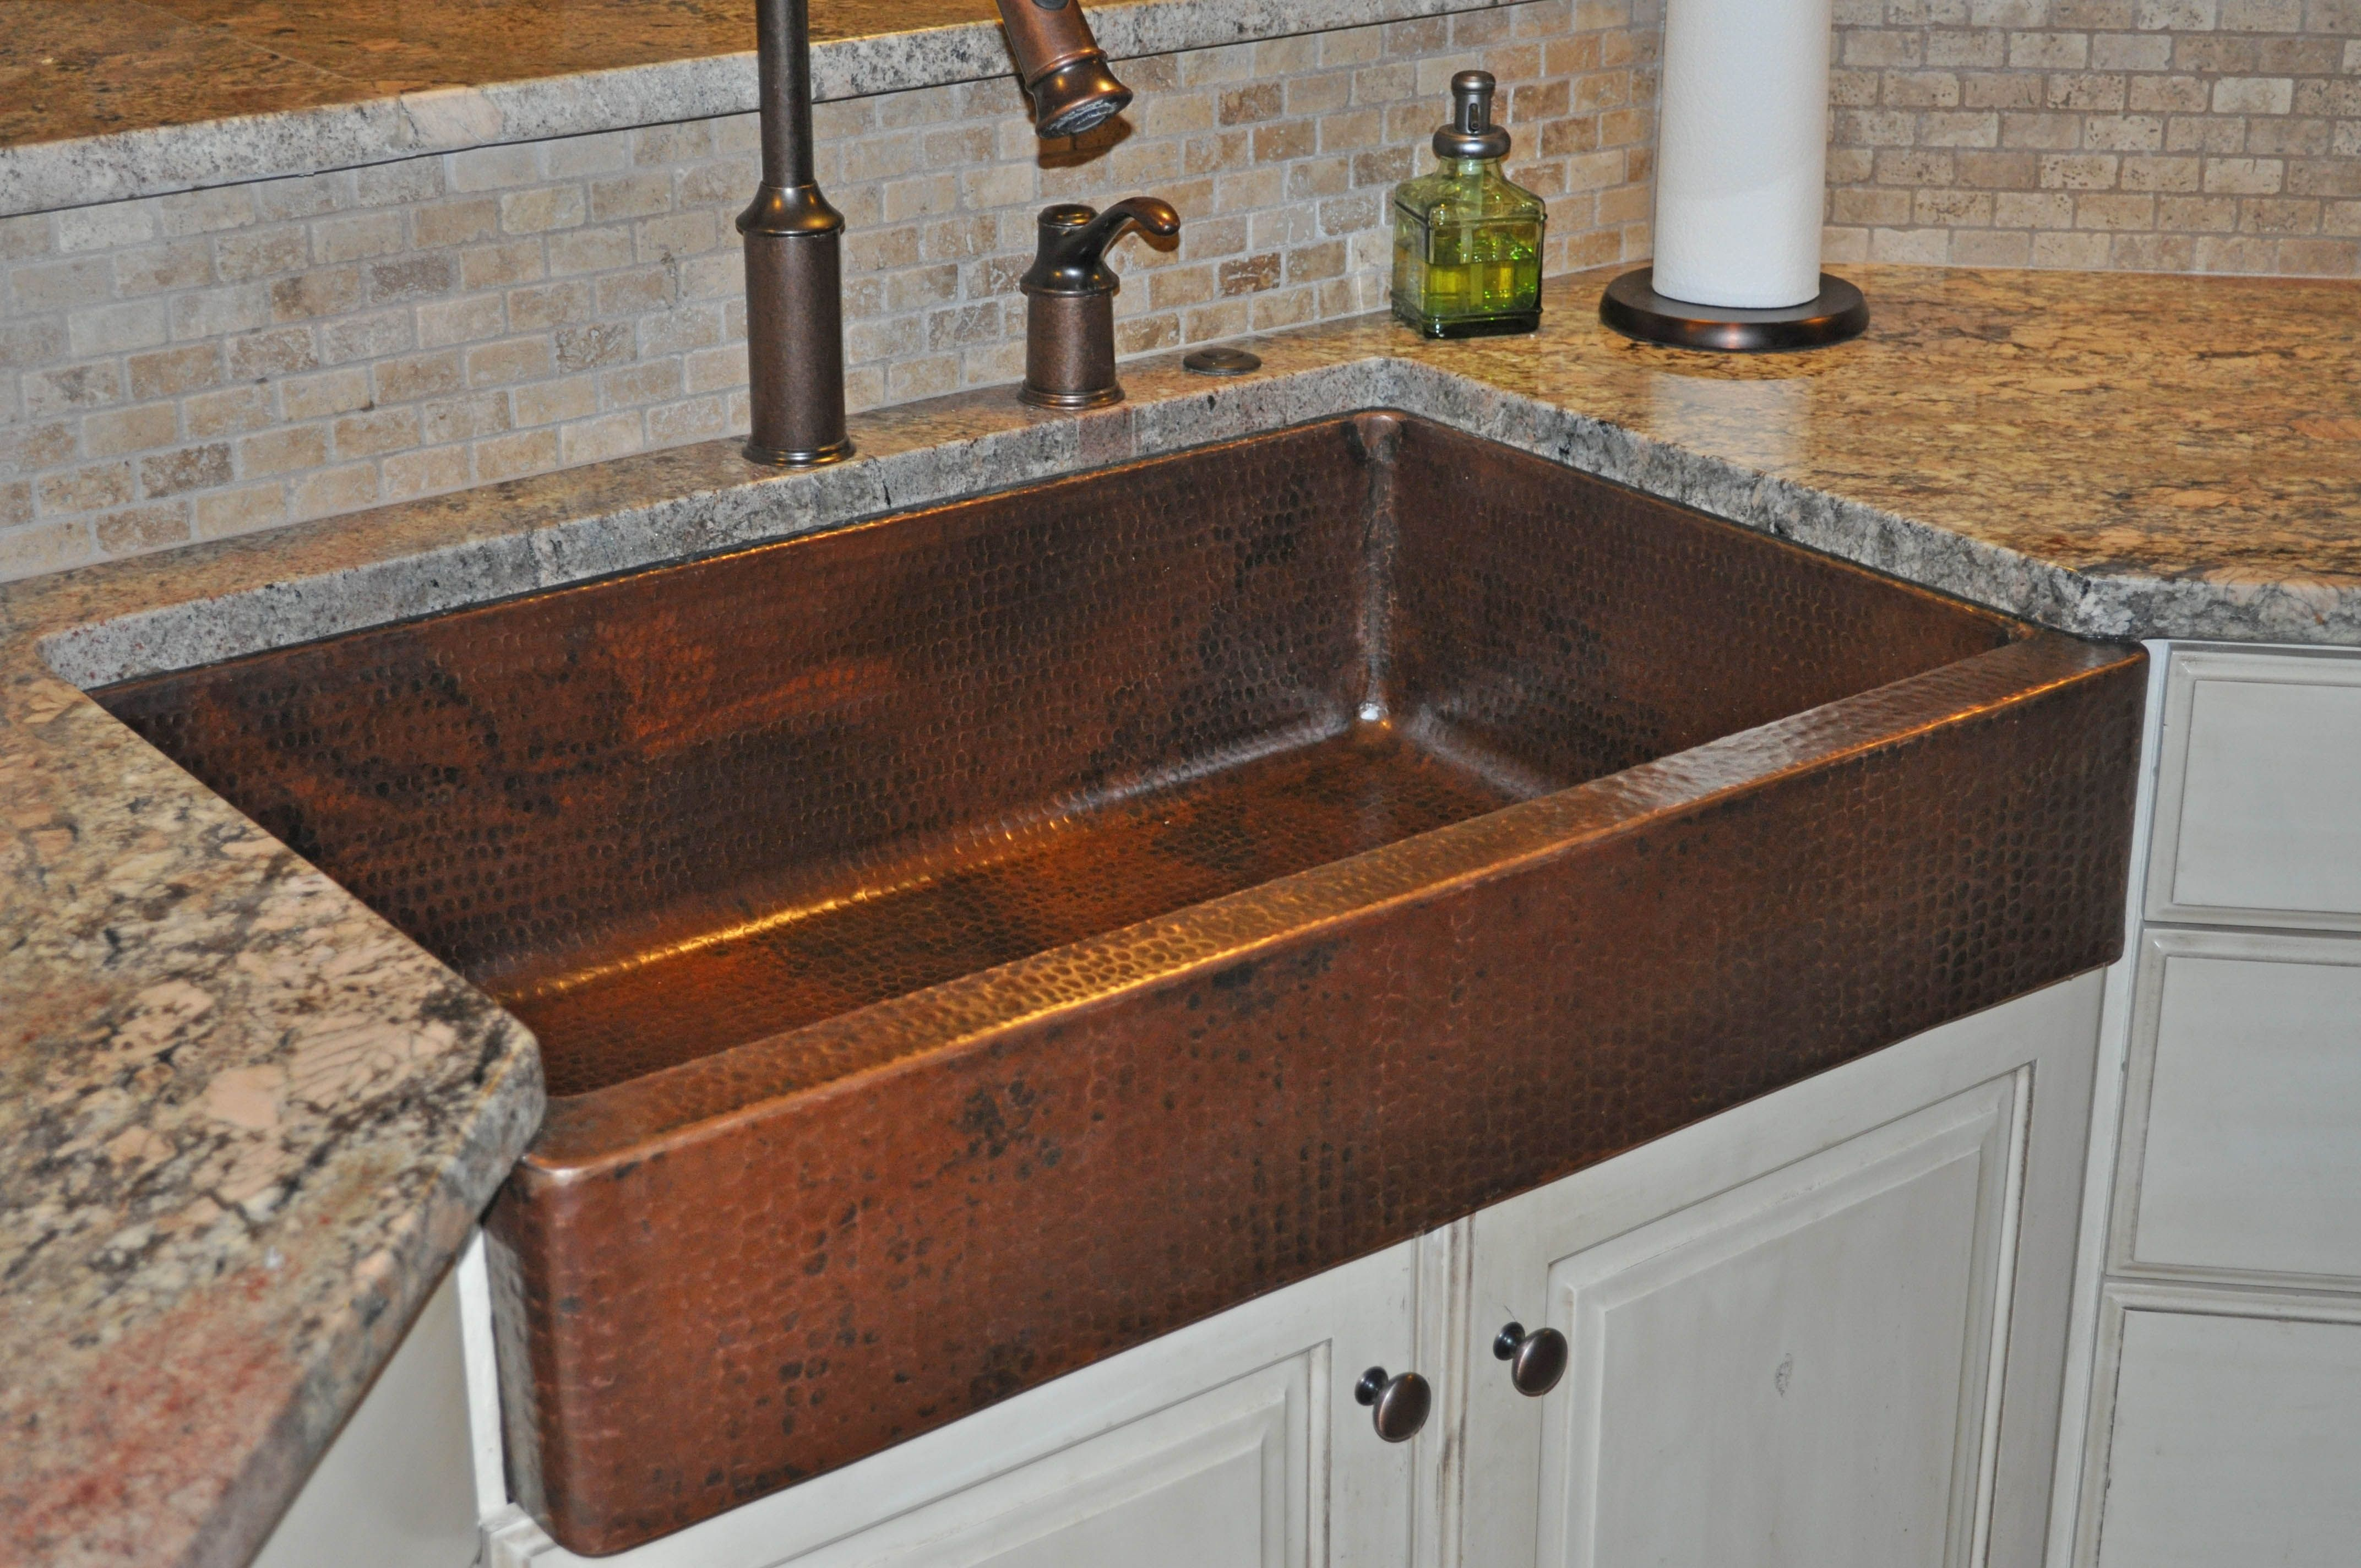 If You Have Always Wanted An Apron Sink But Do Not Want To Change